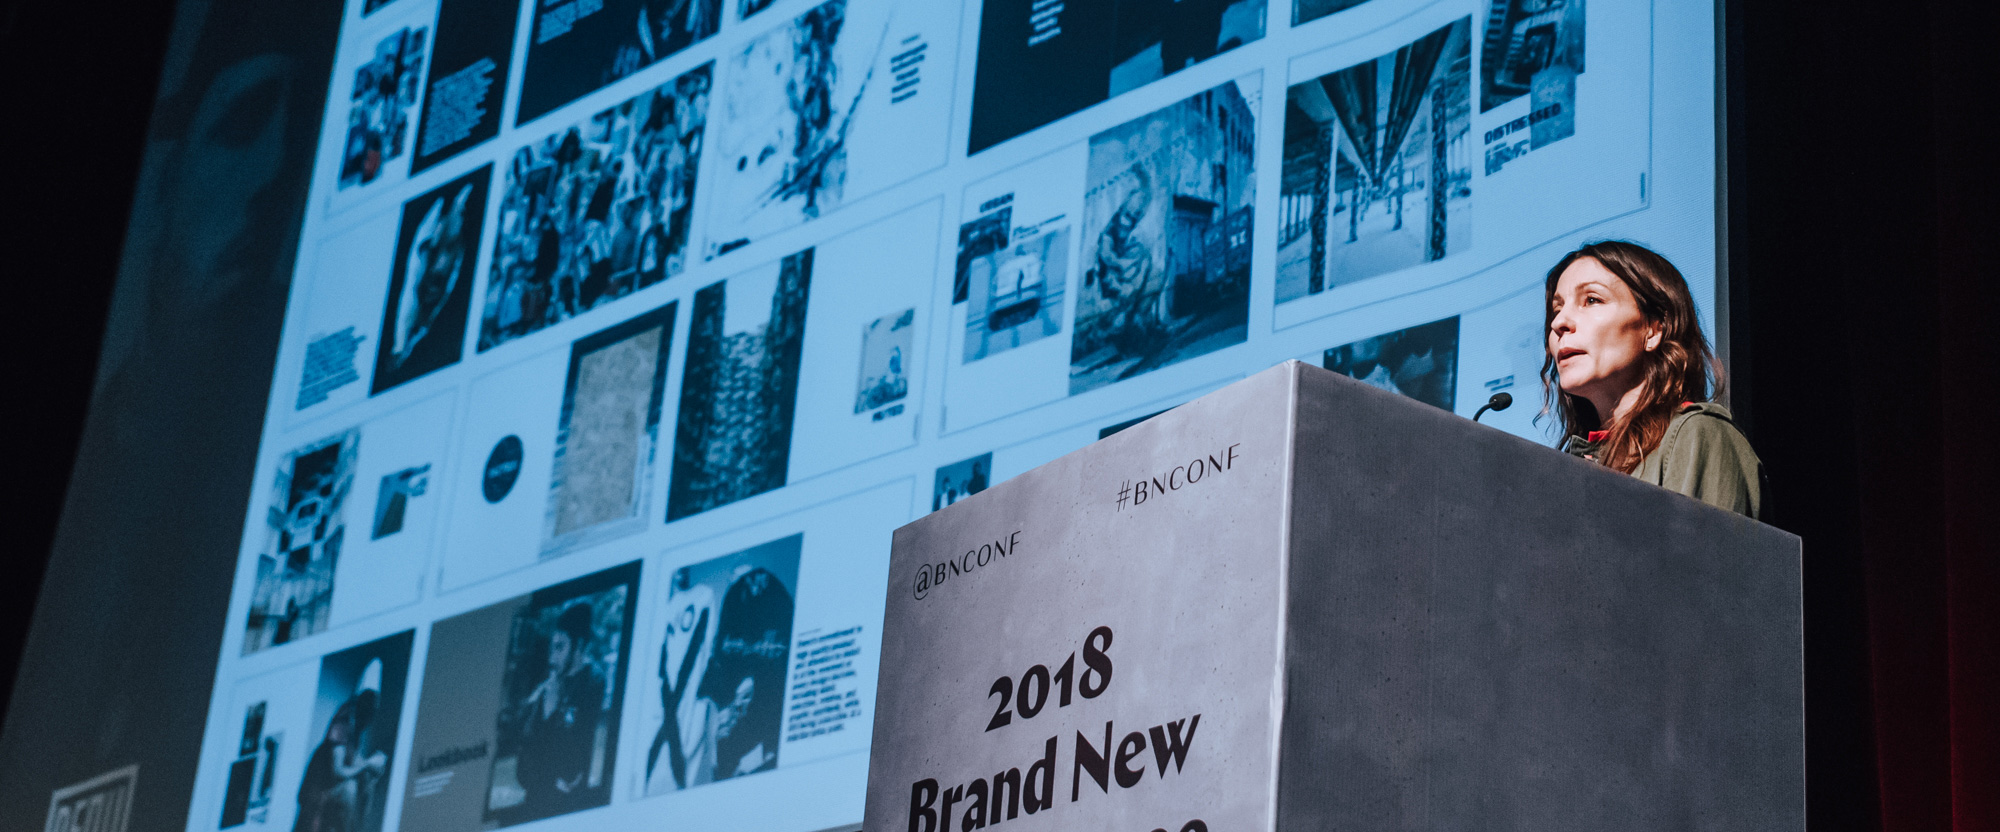 2018 Brand New Conference: Photos, Tweets, and Videos